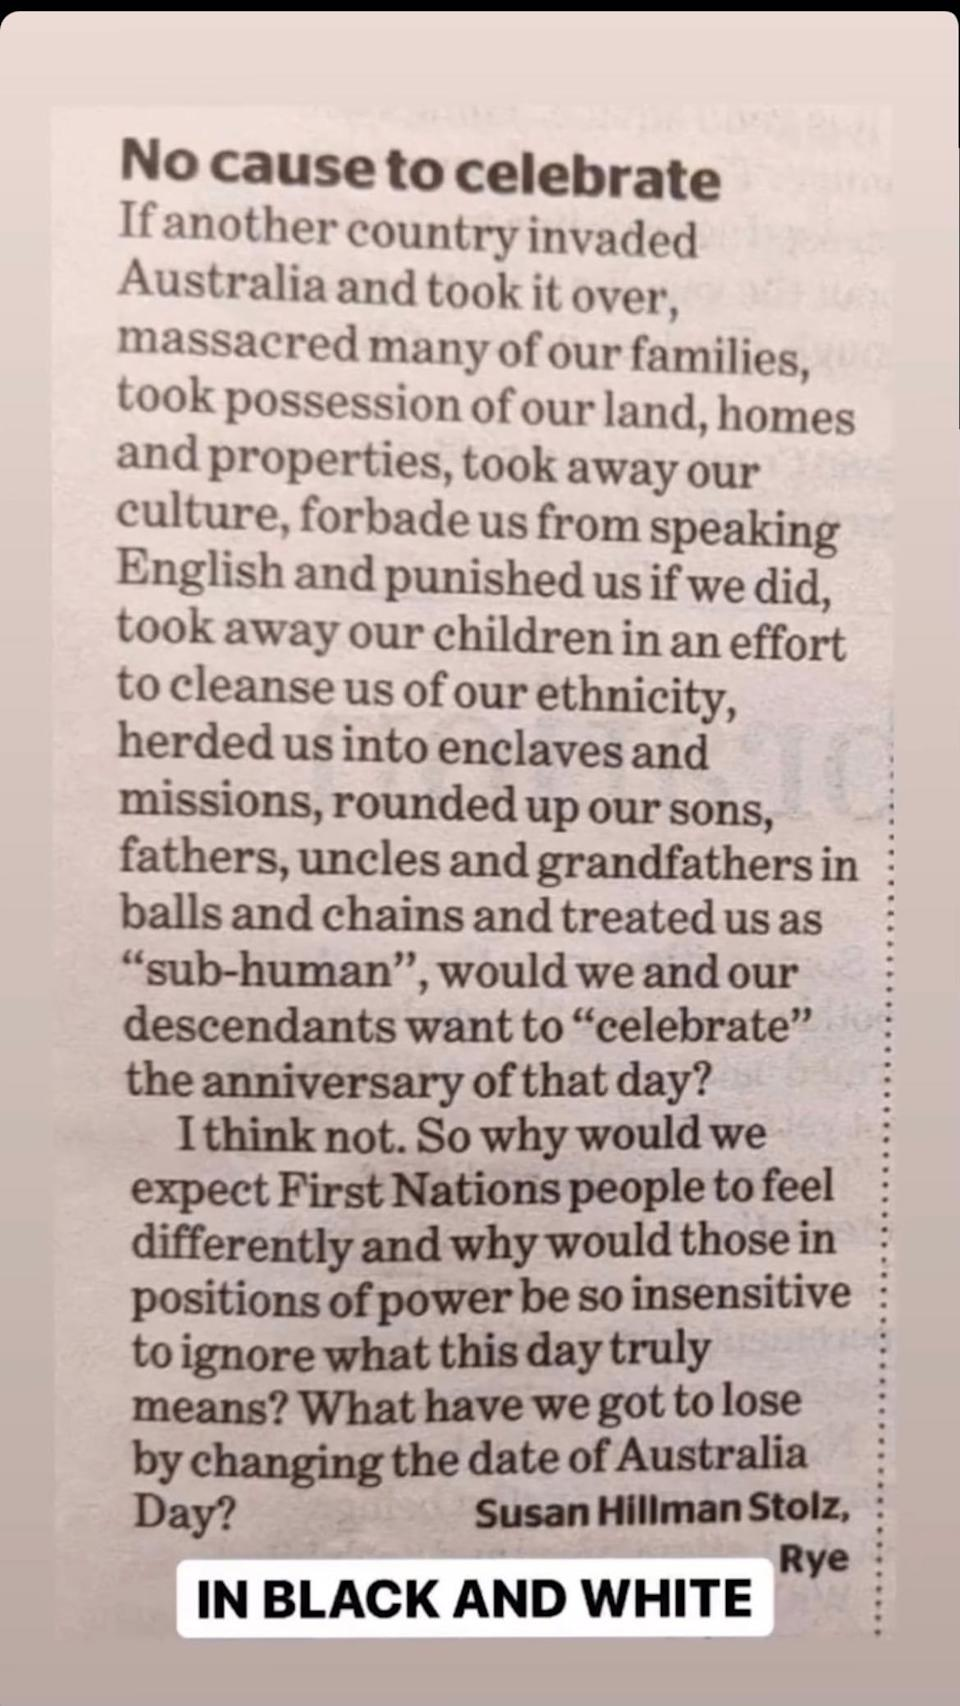 The letter was about why we shouldn't celebrate Australia Day on January 26. Photo: Instagram/Pip Edwards